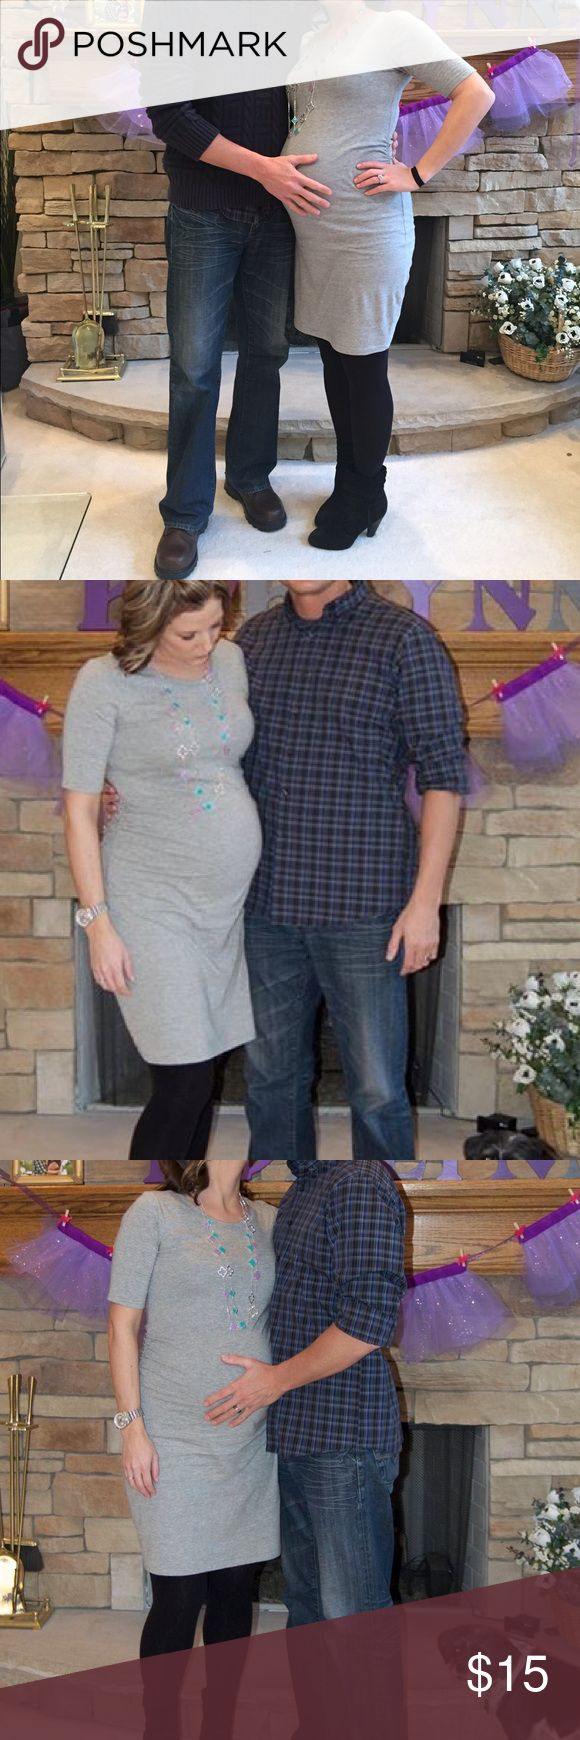 Old navy maternity dress Super cute light Old Navy maternity dress. Perfect for…